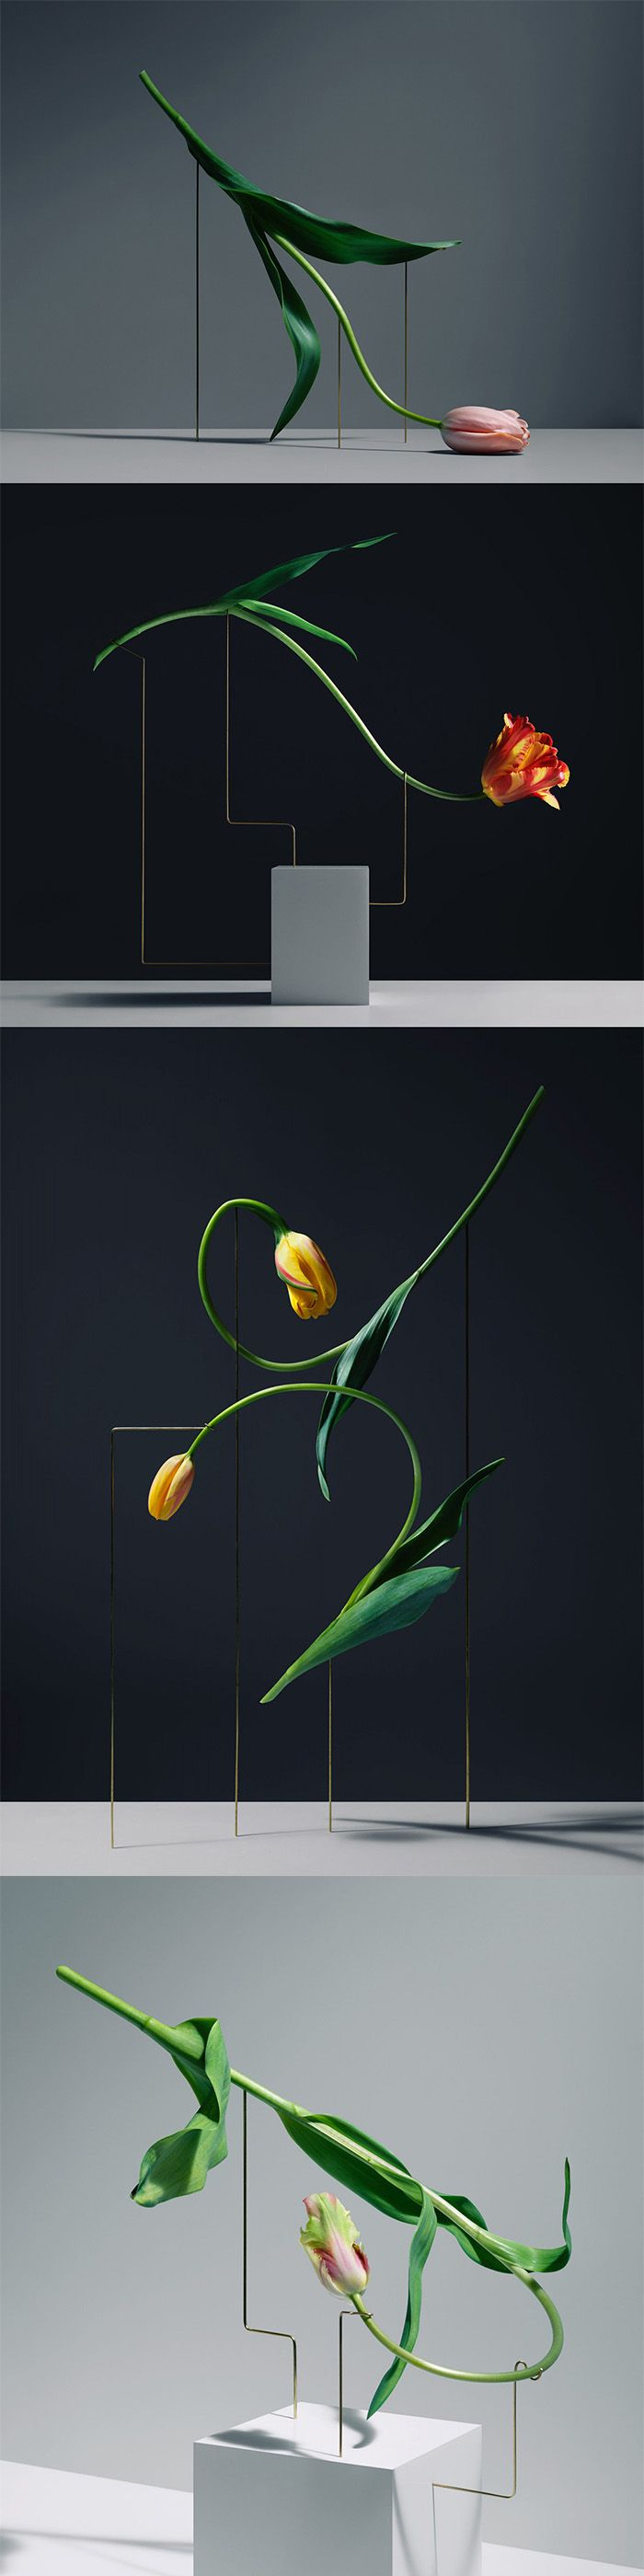 Postures by Carl Kleiner http://thecoolhunter.net/postures-by-carl-kleiner/